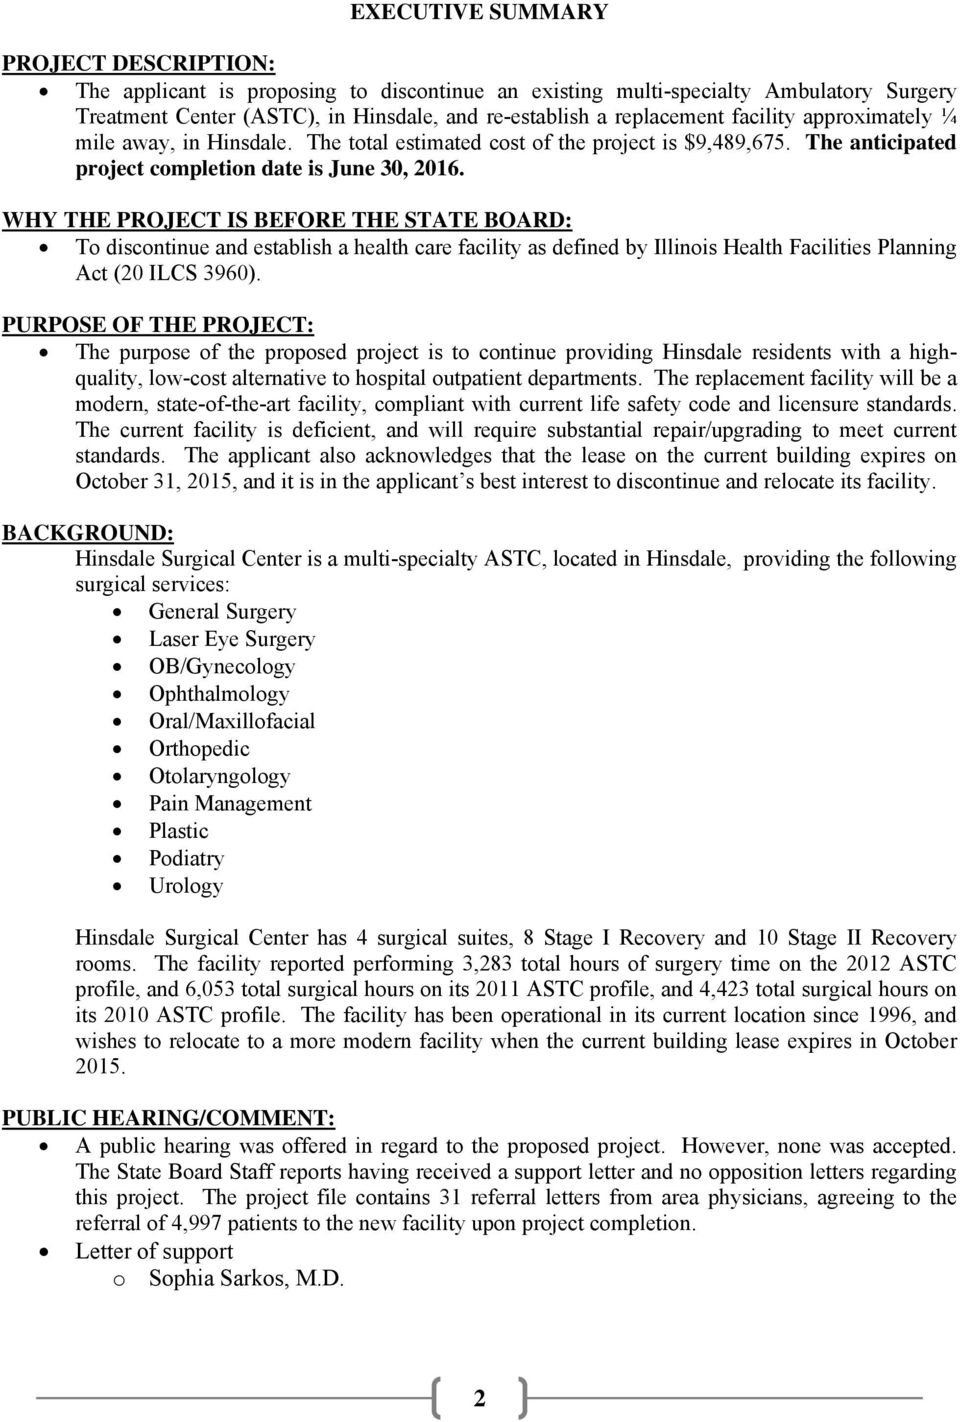 STATE OF ILLINOIS HEALTH FACILITIES AND SERVICES REVIEW BOARD - PDF